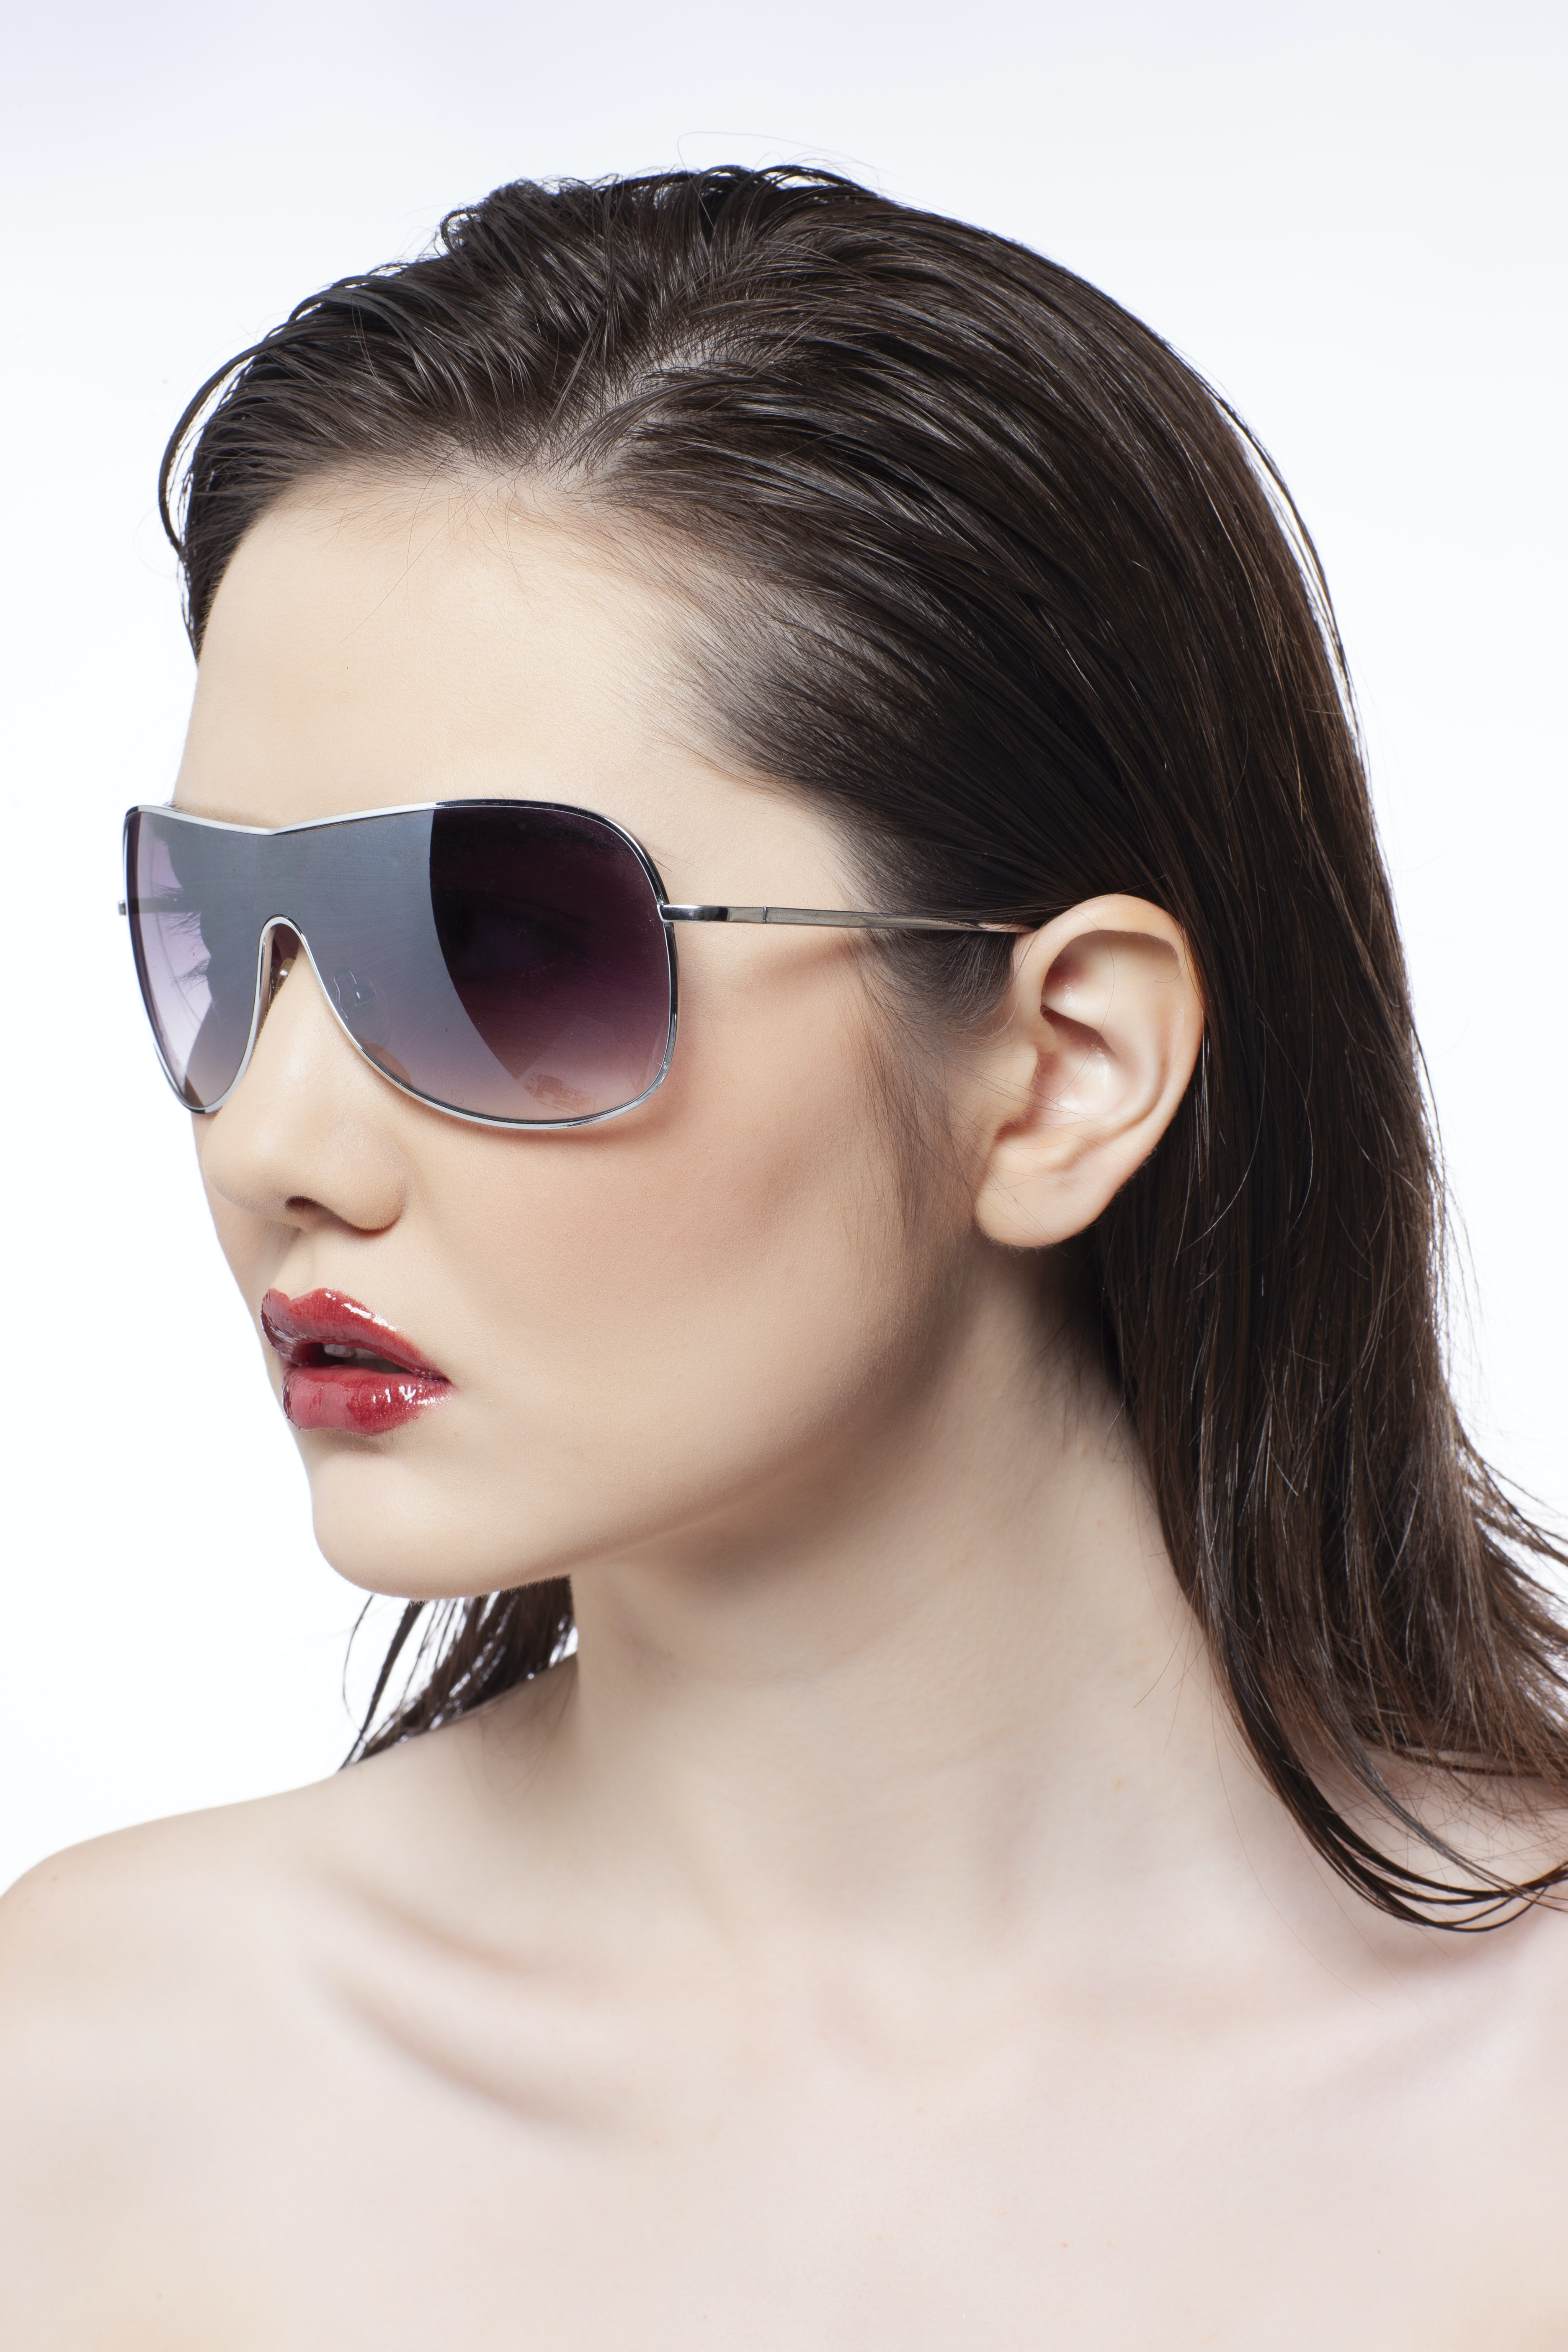 portrait of woman wearing sunglasses with white background